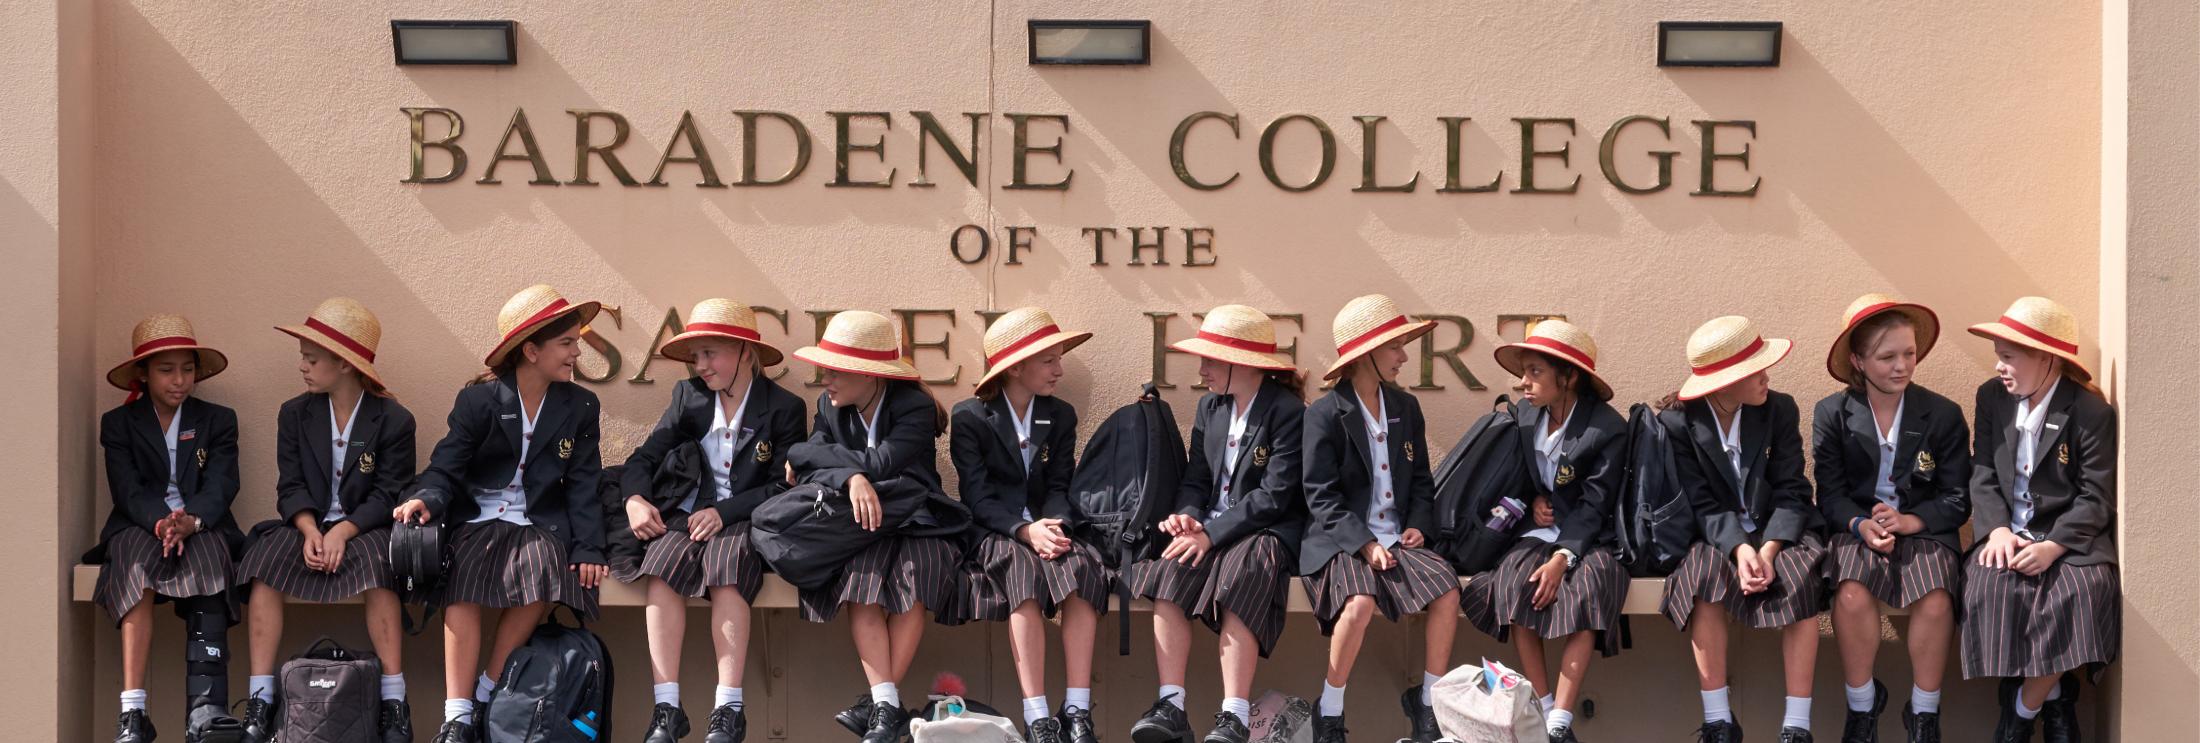 Sacred Heart Goals - About - Baradene College